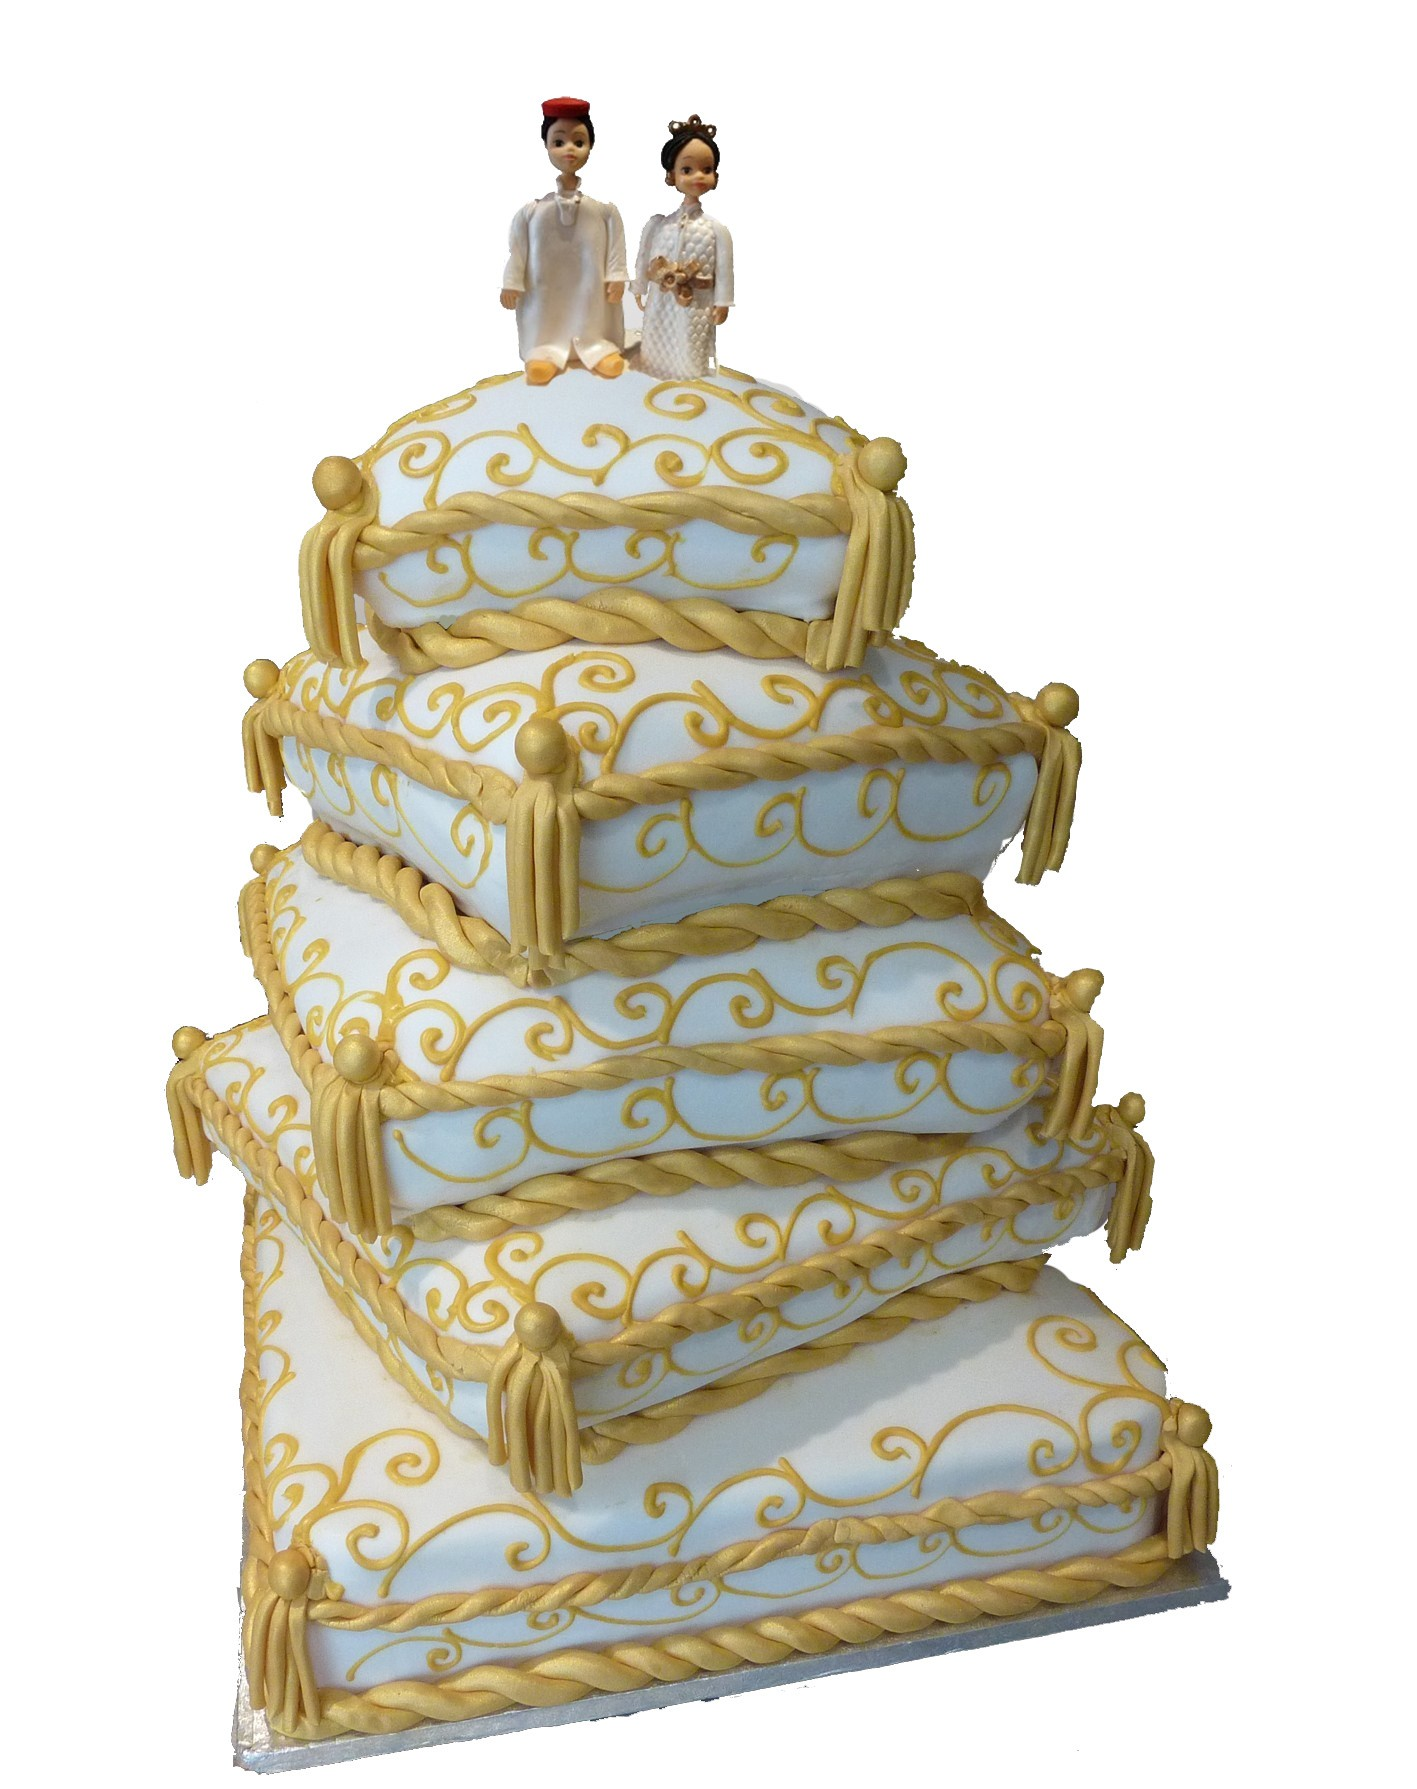 Image piece montee for Interieur wedding cake